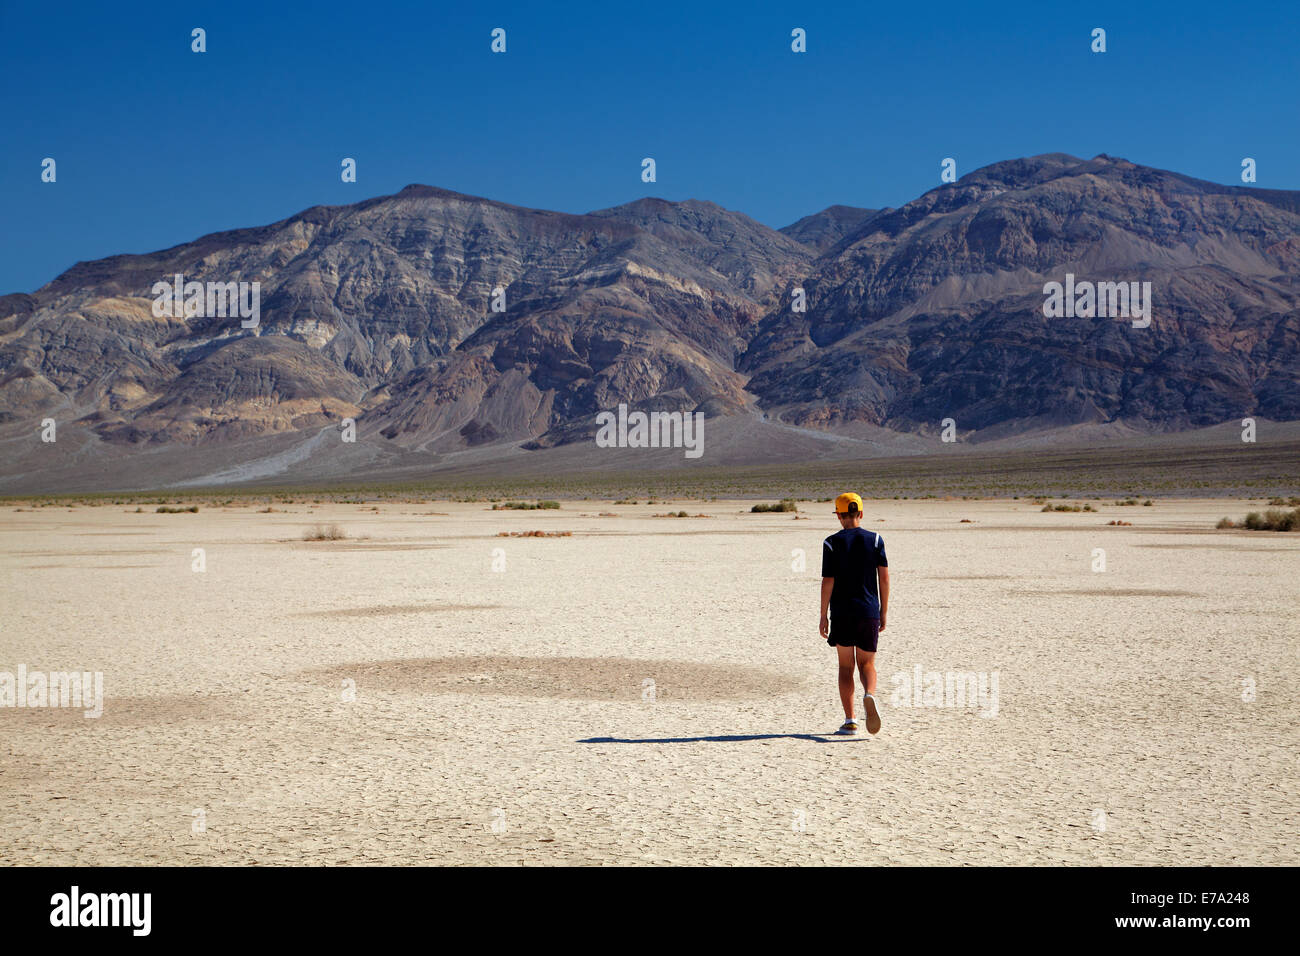 Boy on Salt Pan, Panamint Valley, and Panamint Range, Death Valley National Park, Mojave Desert, California, USA - Stock Image